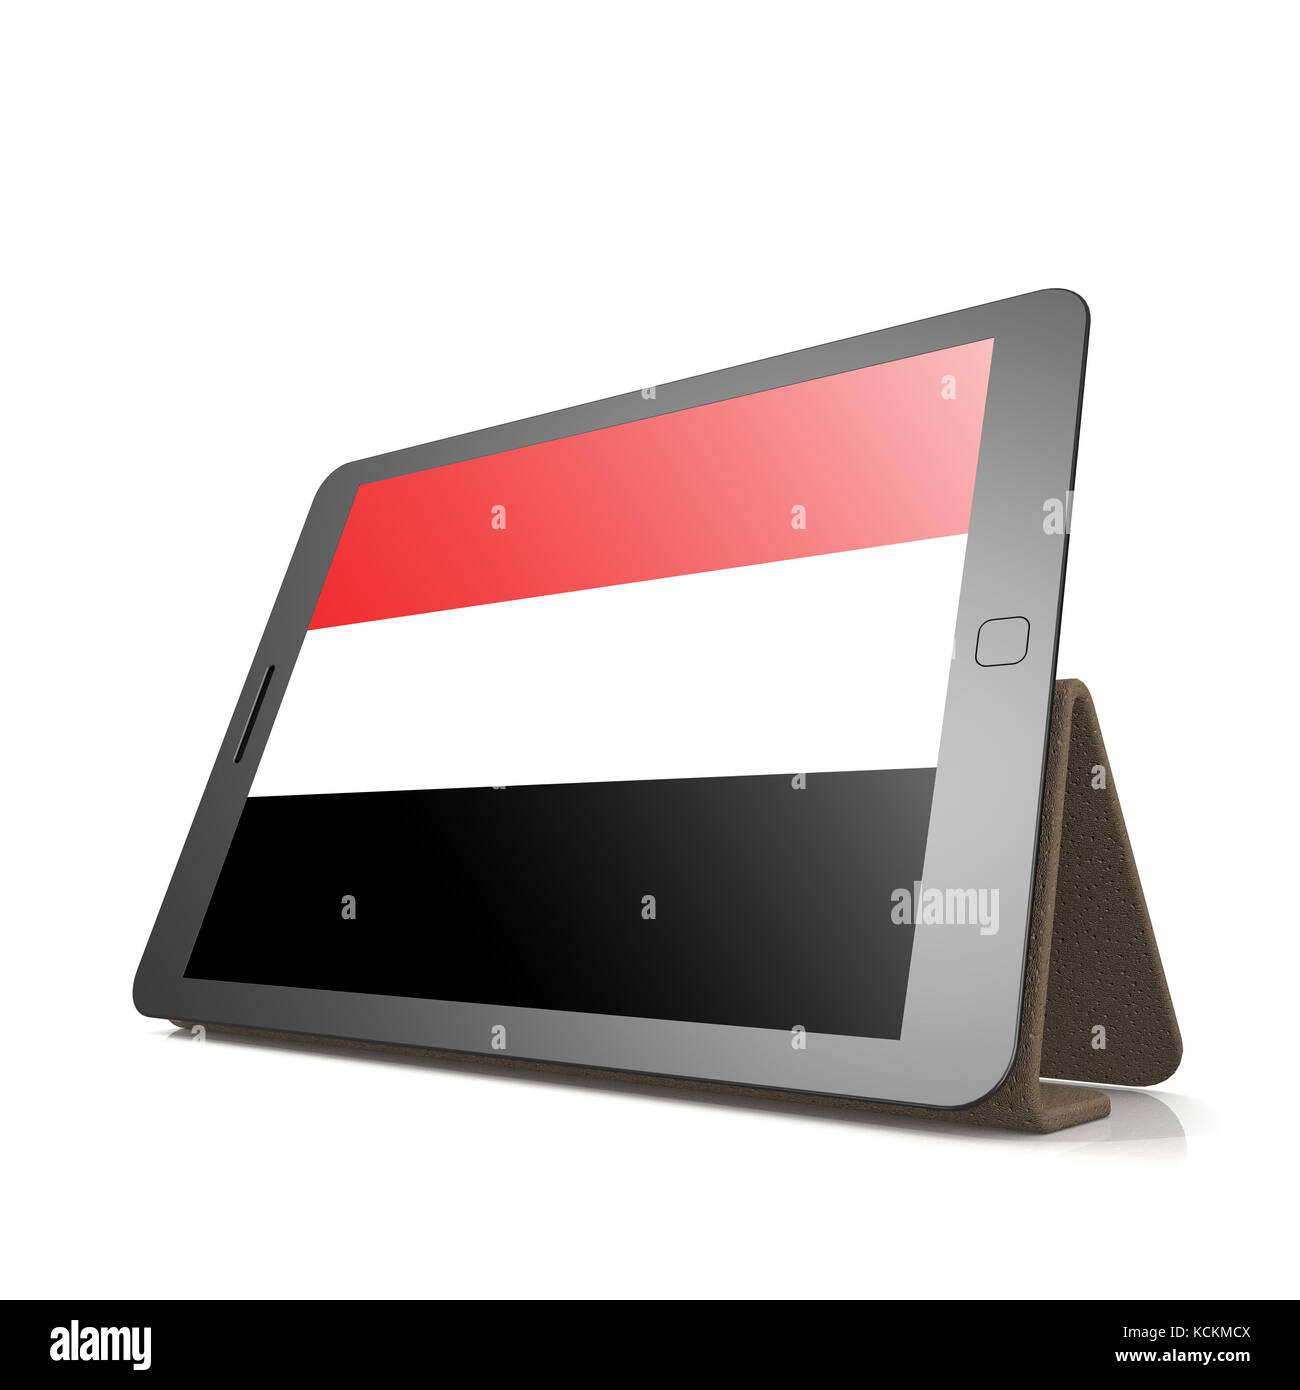 Tablet with Yemen flag image with hi-res rendered artwork that could be used for any graphic design. Stock Photo